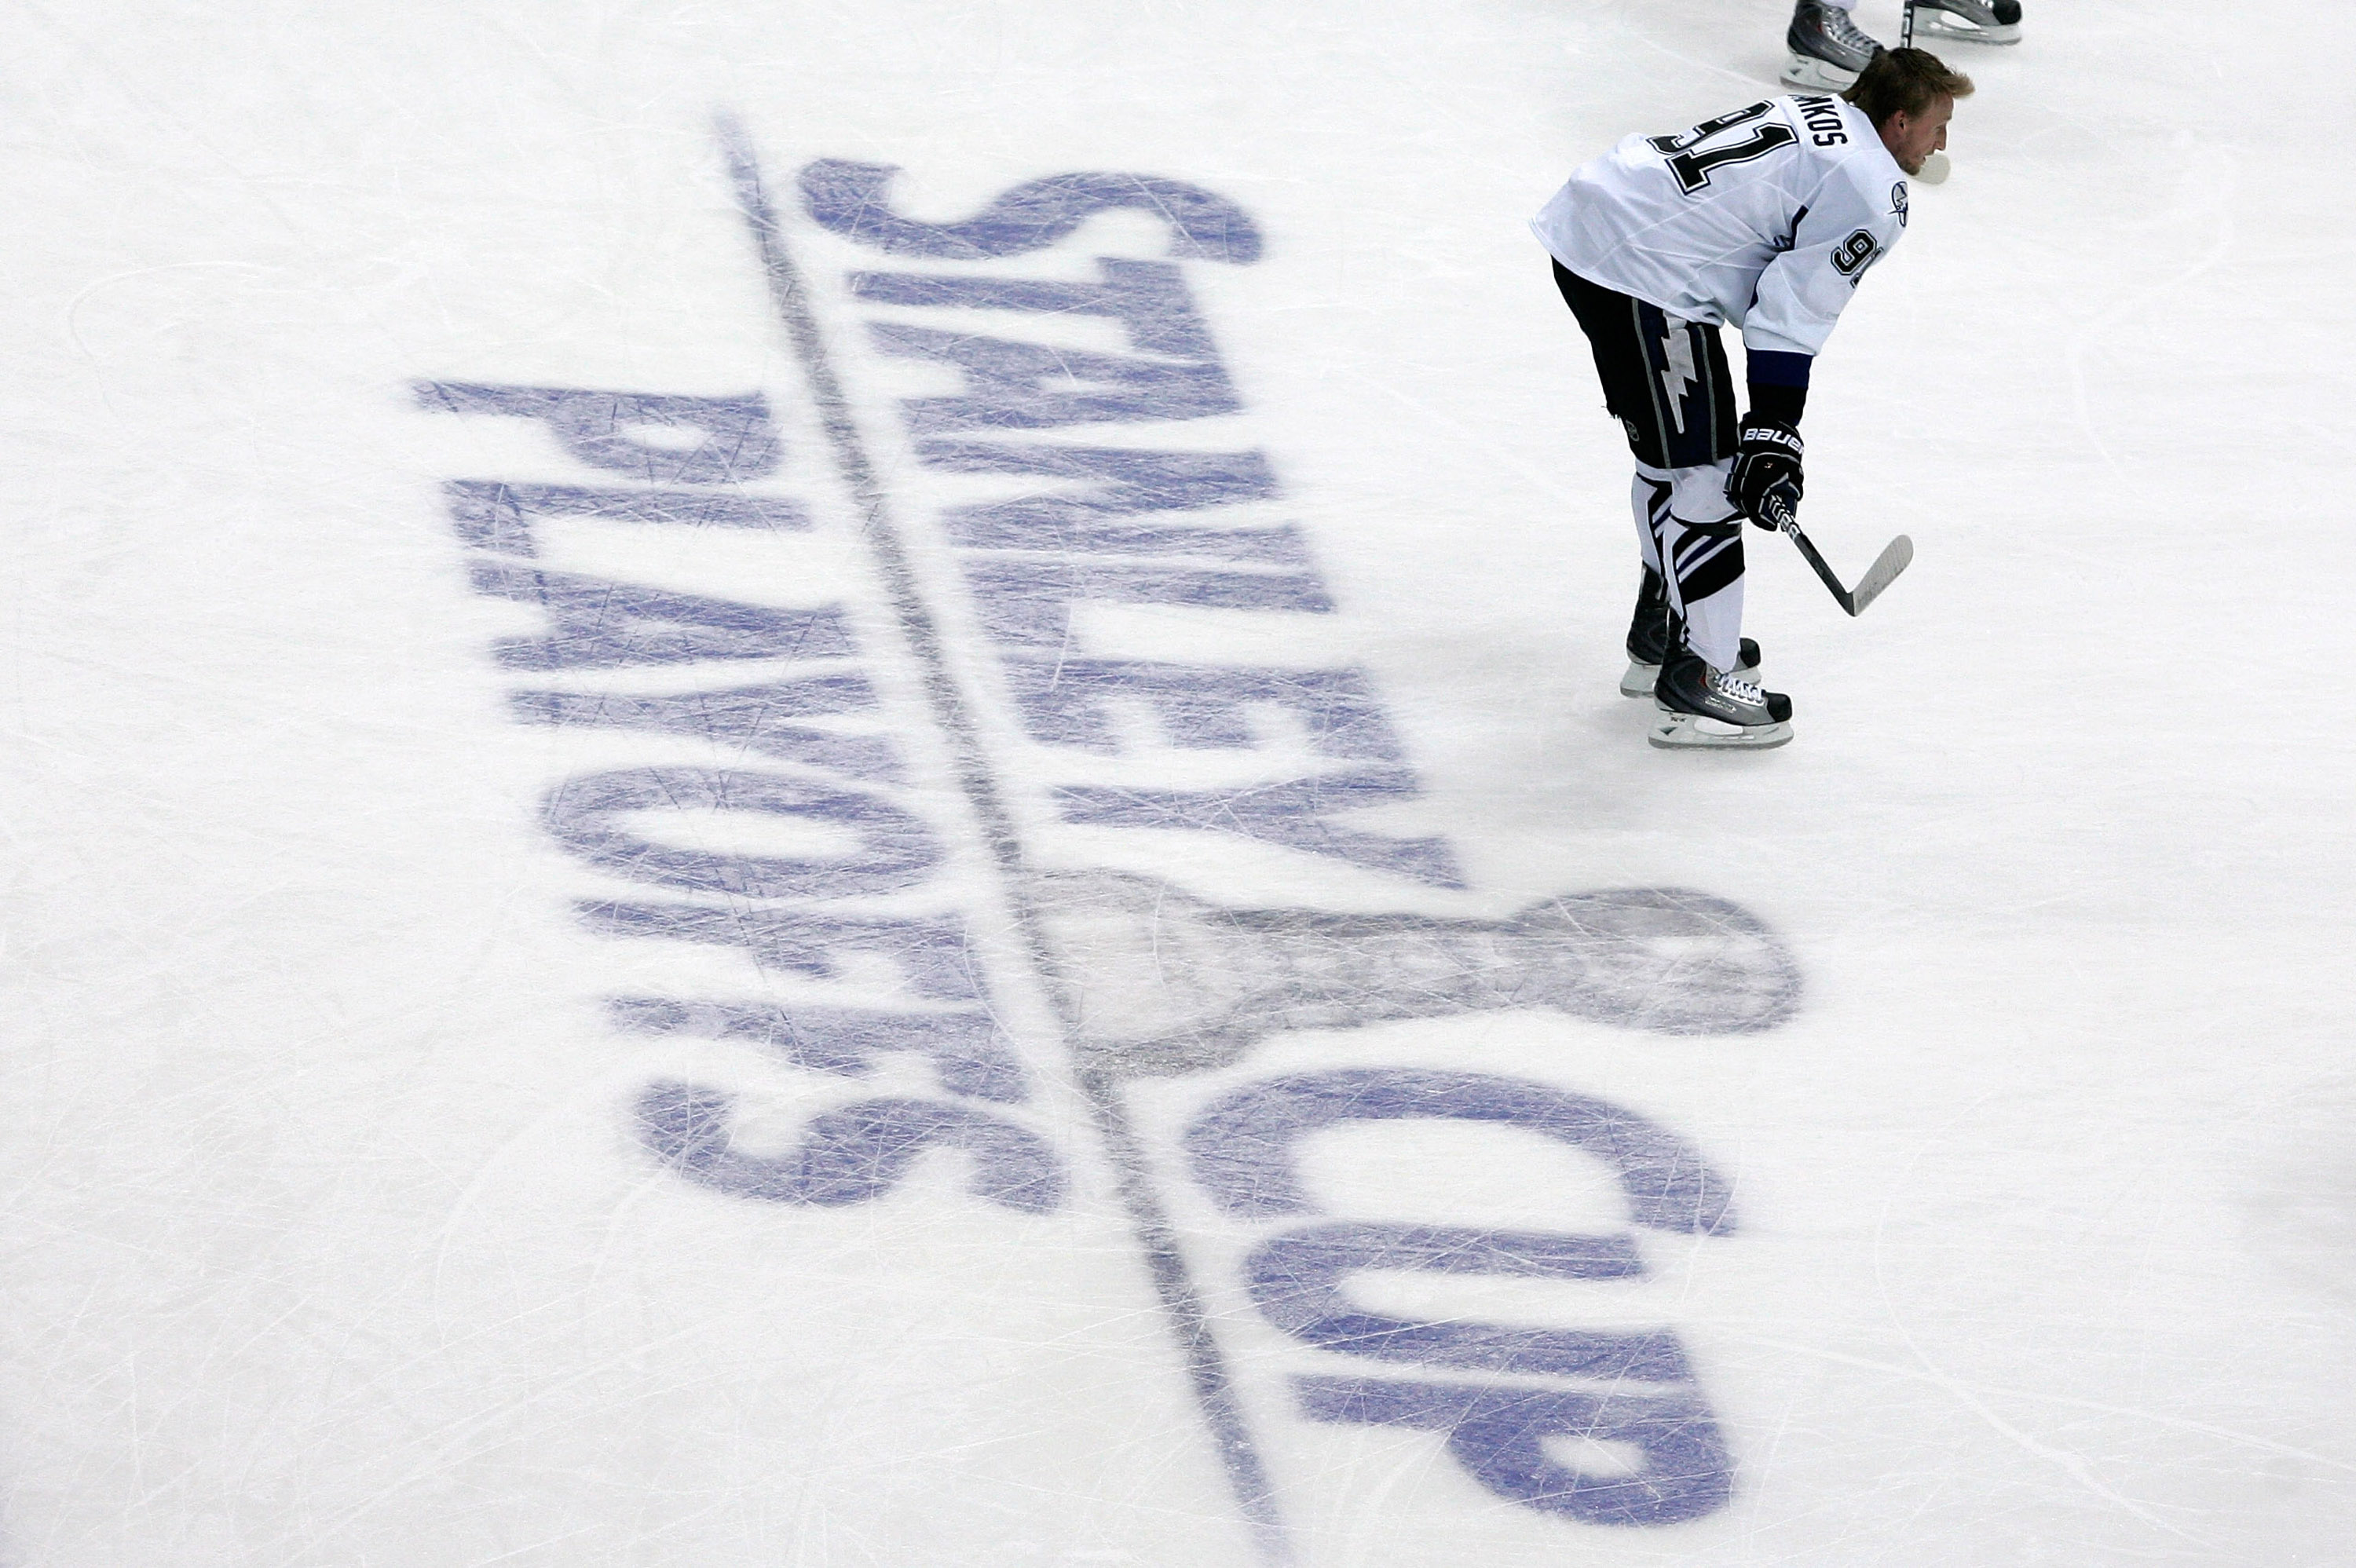 PITTSBURGH, PA - APRIL 15:  Steven Stamkos #91 of the Tampa Bay Lightning waits on the ice during warmups prior to the start of Game Two of the Eastern Conference Quarterfinals against the  Pittsburgh Penguins during the 2011 NHL Stanley Cup Playoffs at C